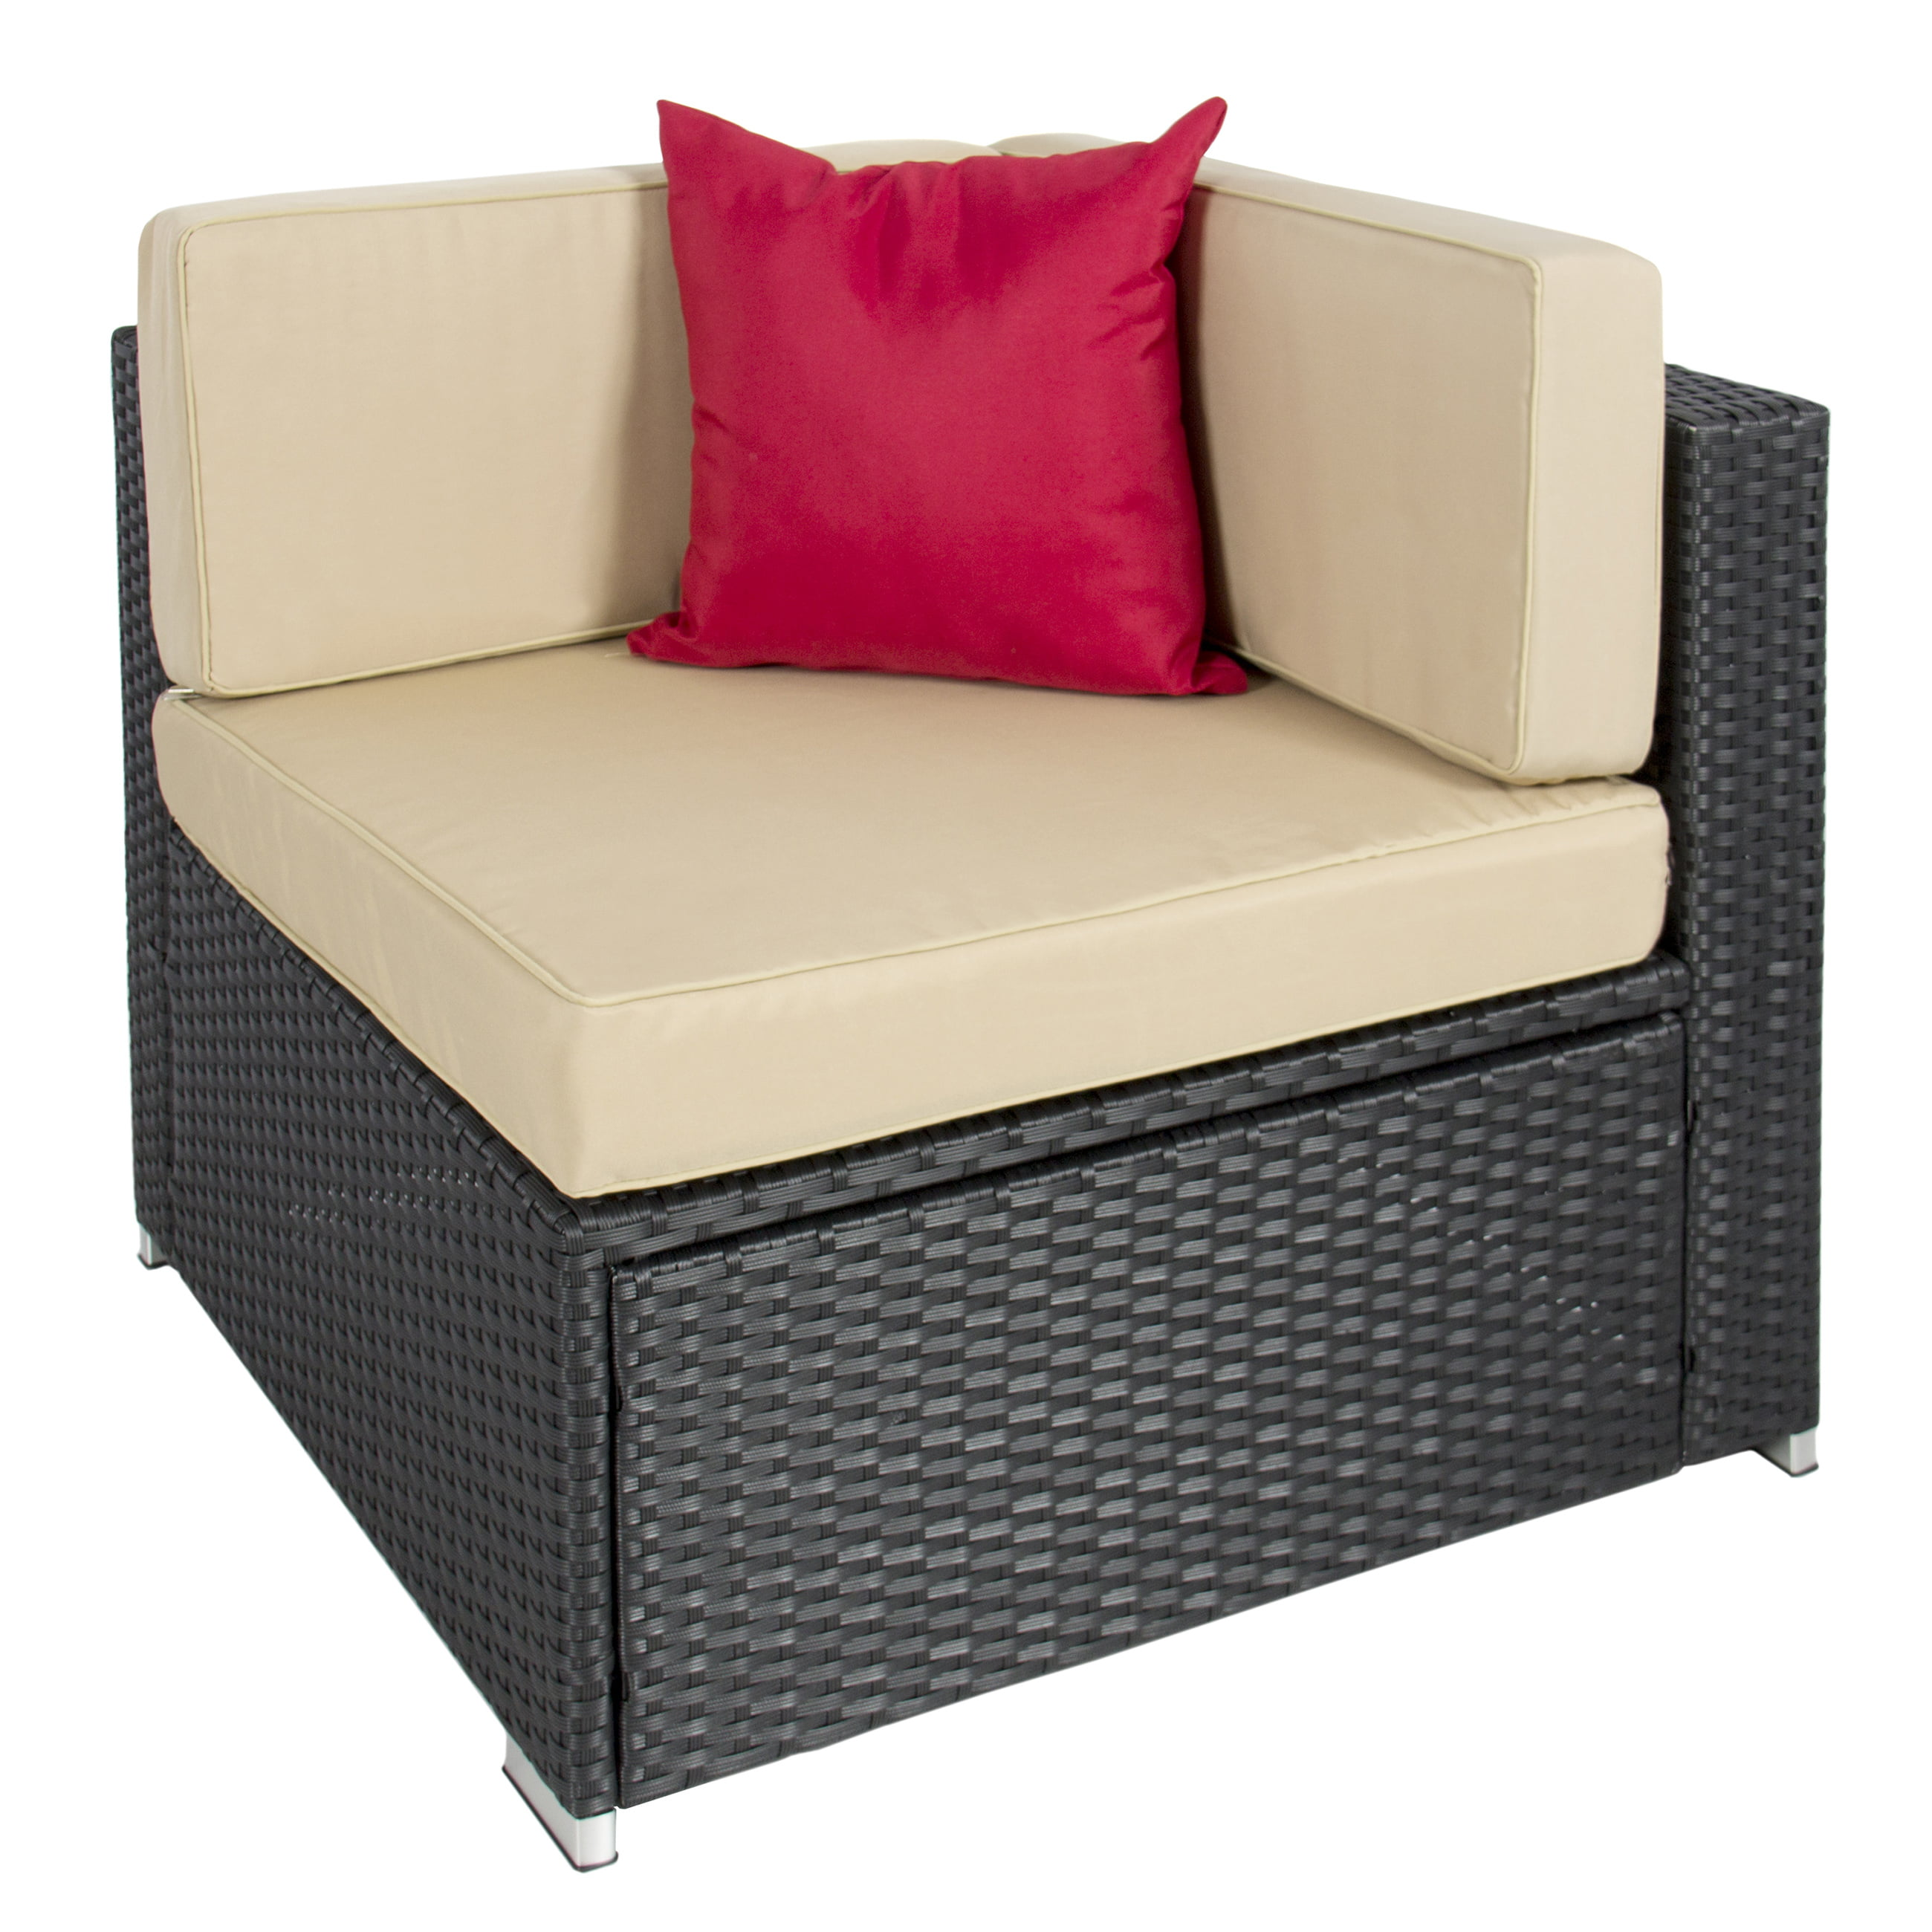 Rattan And Wicker Furniture #19: 7pc Outdoor Patio Garden Wicker Furniture Rattan Sofa Set Sectional Black - Walmart.com